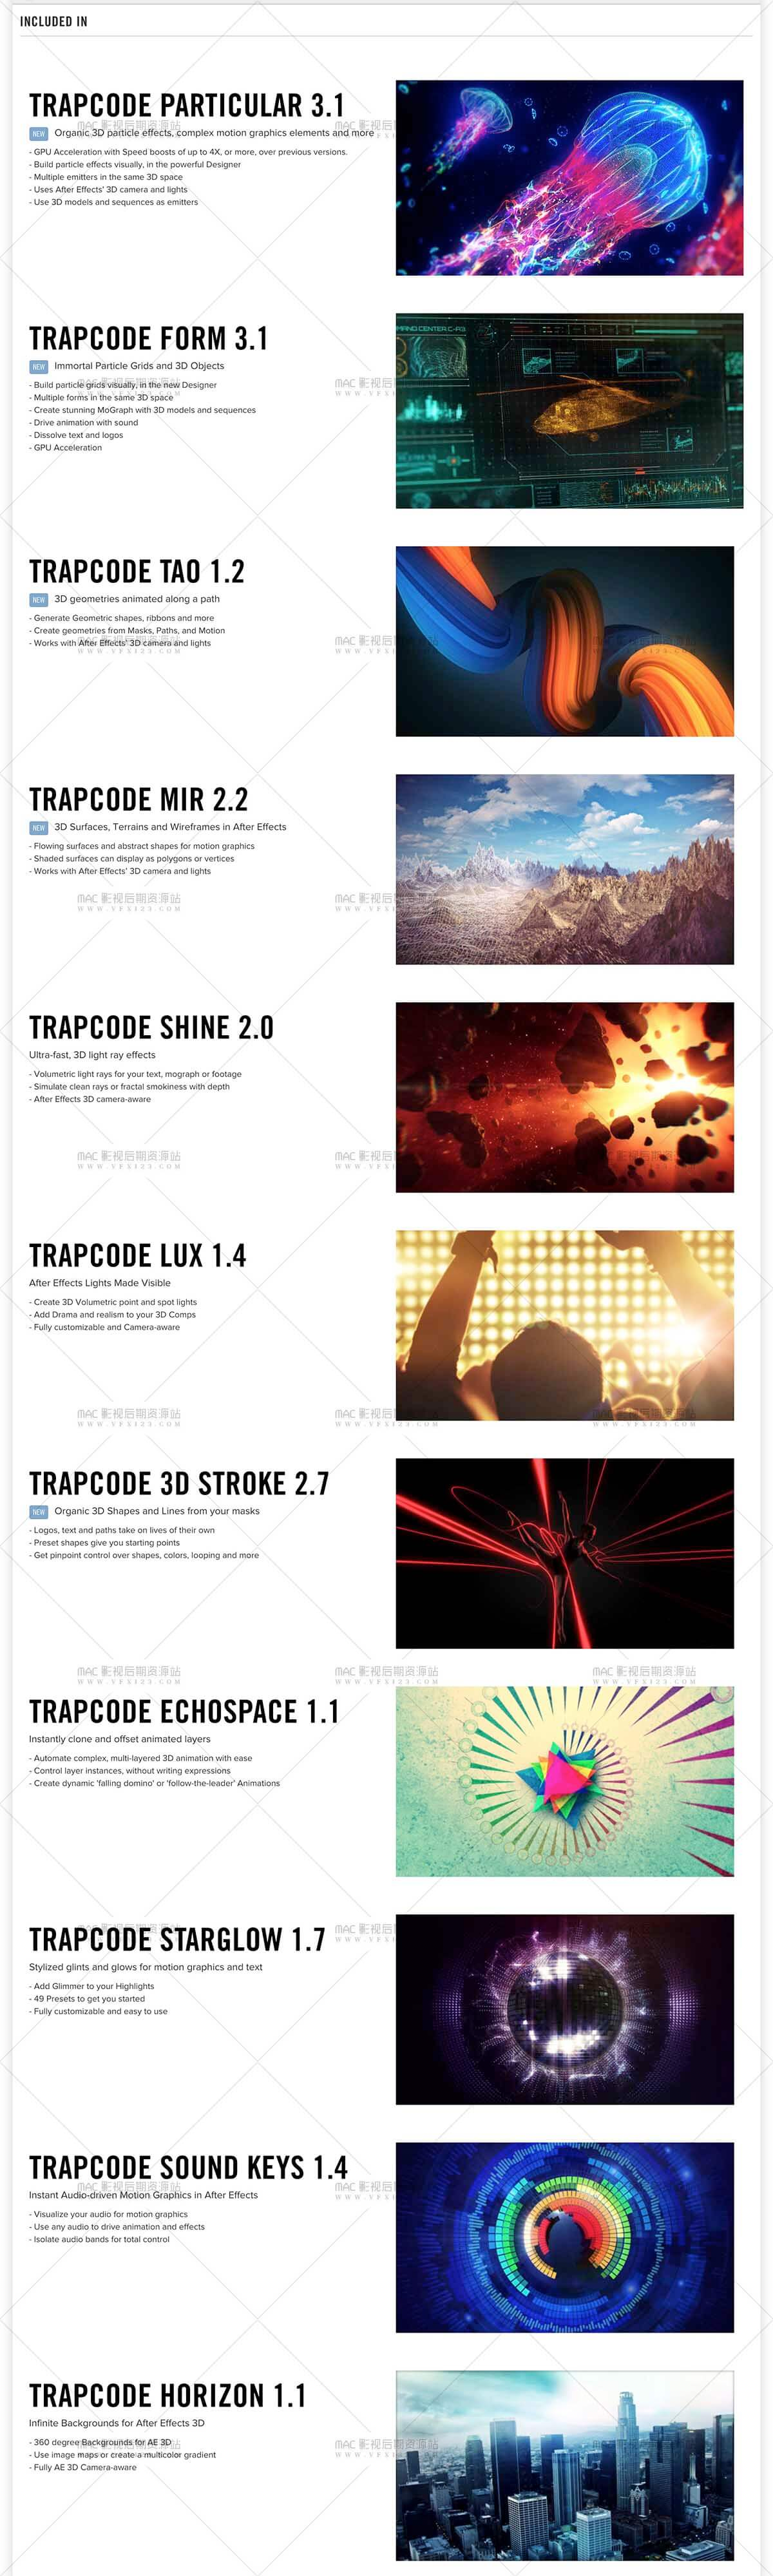 Red Giant Trapcode Suite 14.1.2 红巨人粒子套装插件包最新版